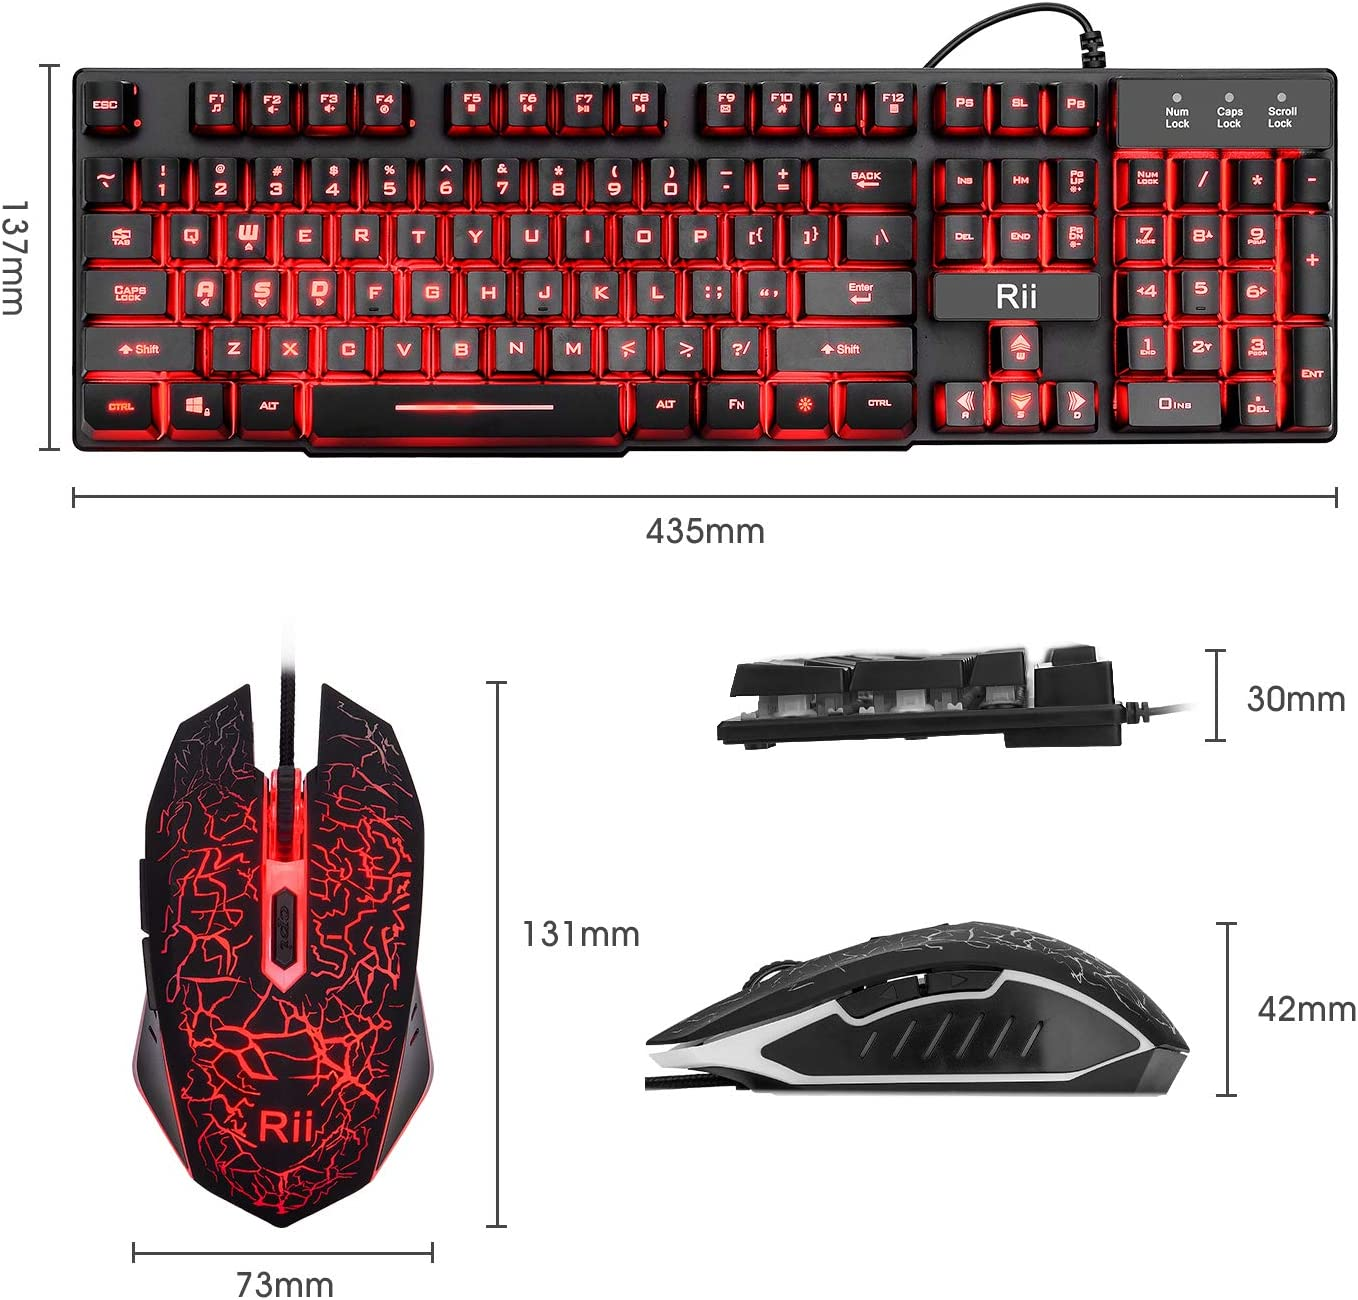 Rii RGB Backlit Keyboard,Gaming Keyboard and Mouse Combo,USB Wired Keyboard,RGB Optical Mouse for Gaming,Business Office